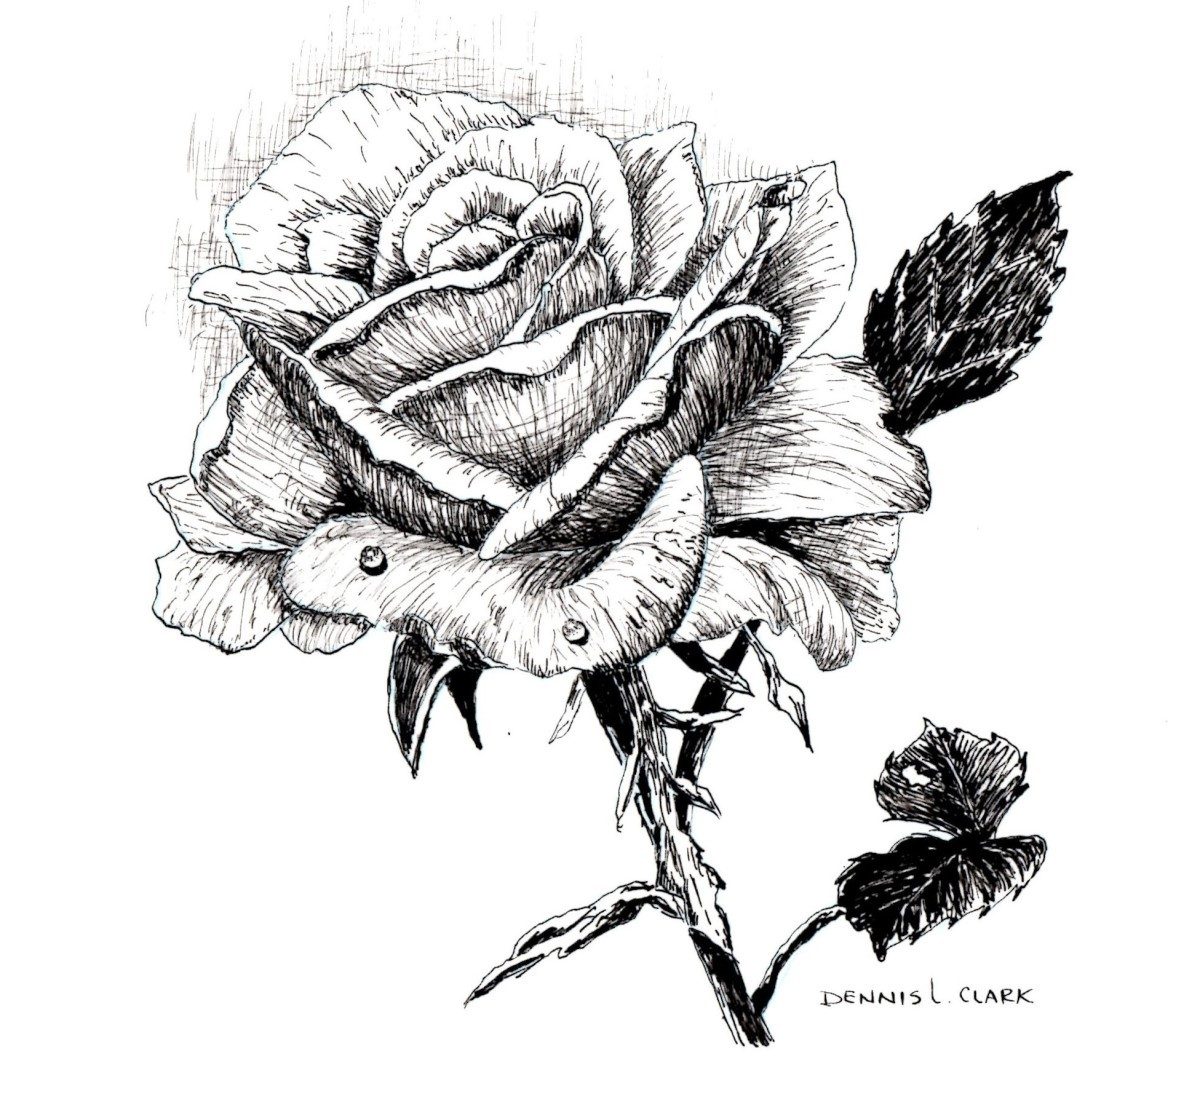 How To Draw A Rose In Pen And Ink